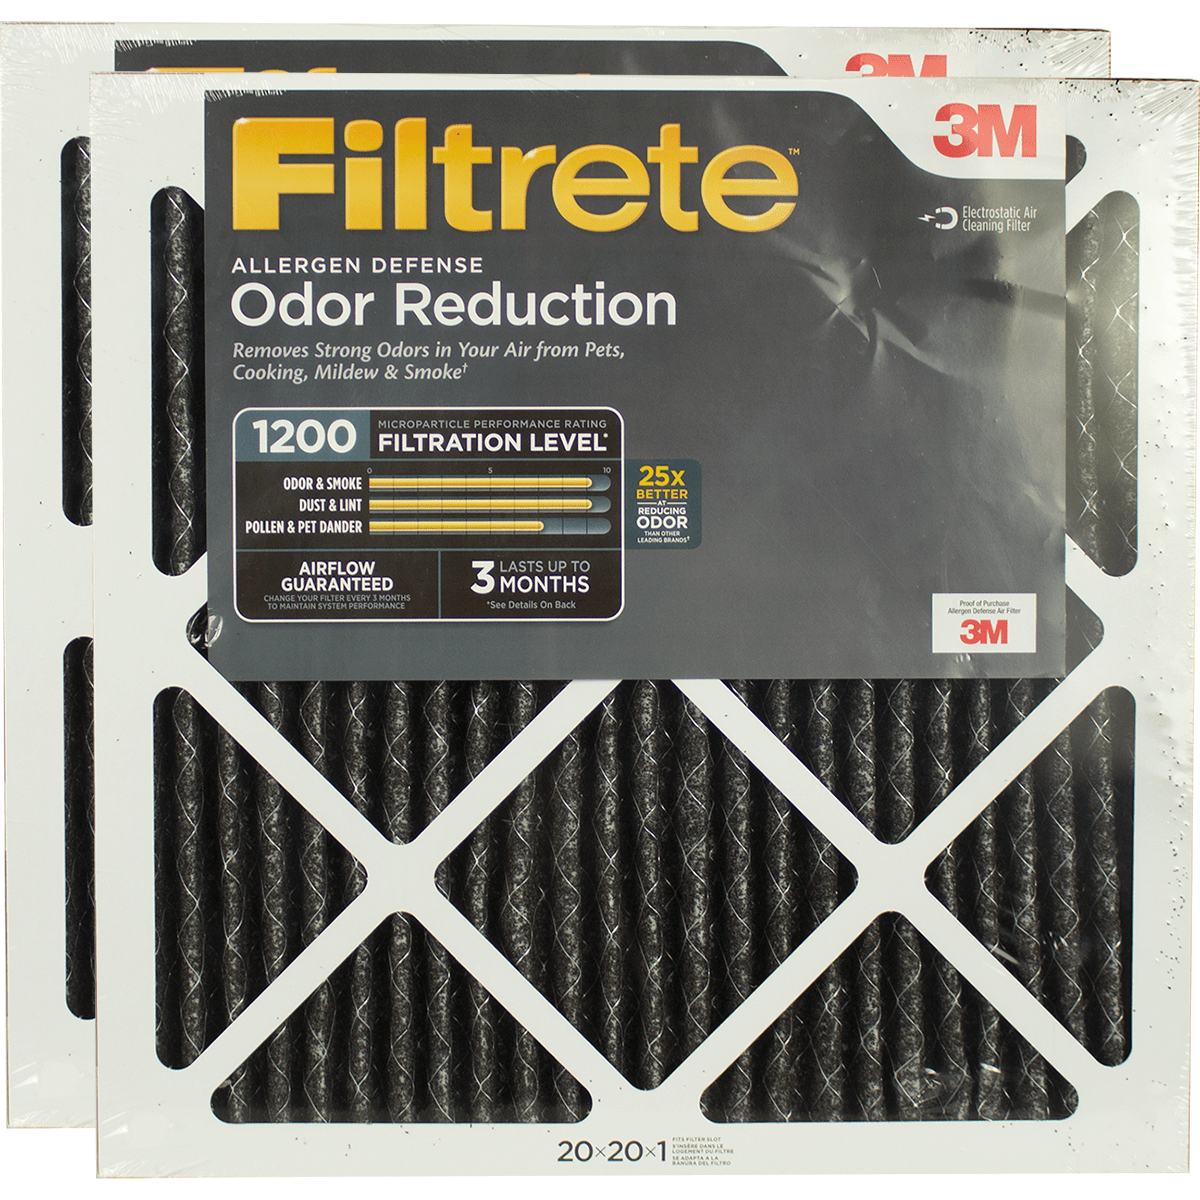 3m Filtrete 1200 Mpr Allergen Defense Odor Reduction Filters 20x20x1 2-pack